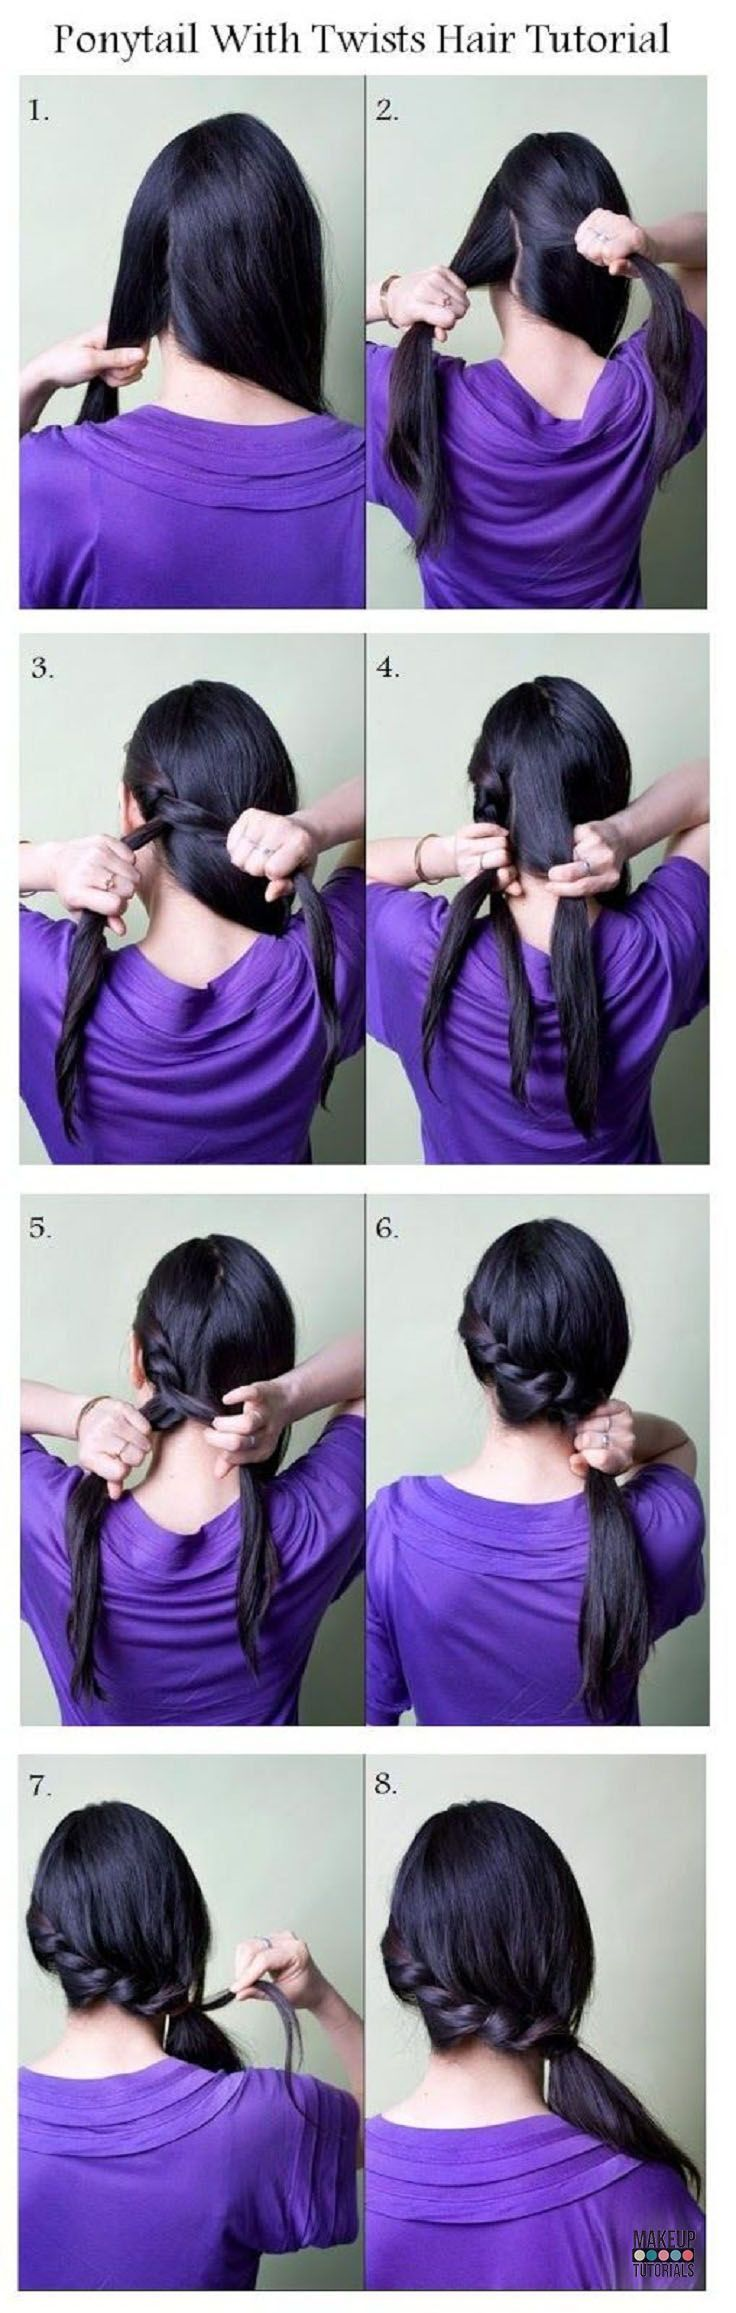 hairstyles for work easy hairstyles diy hair and tutorials